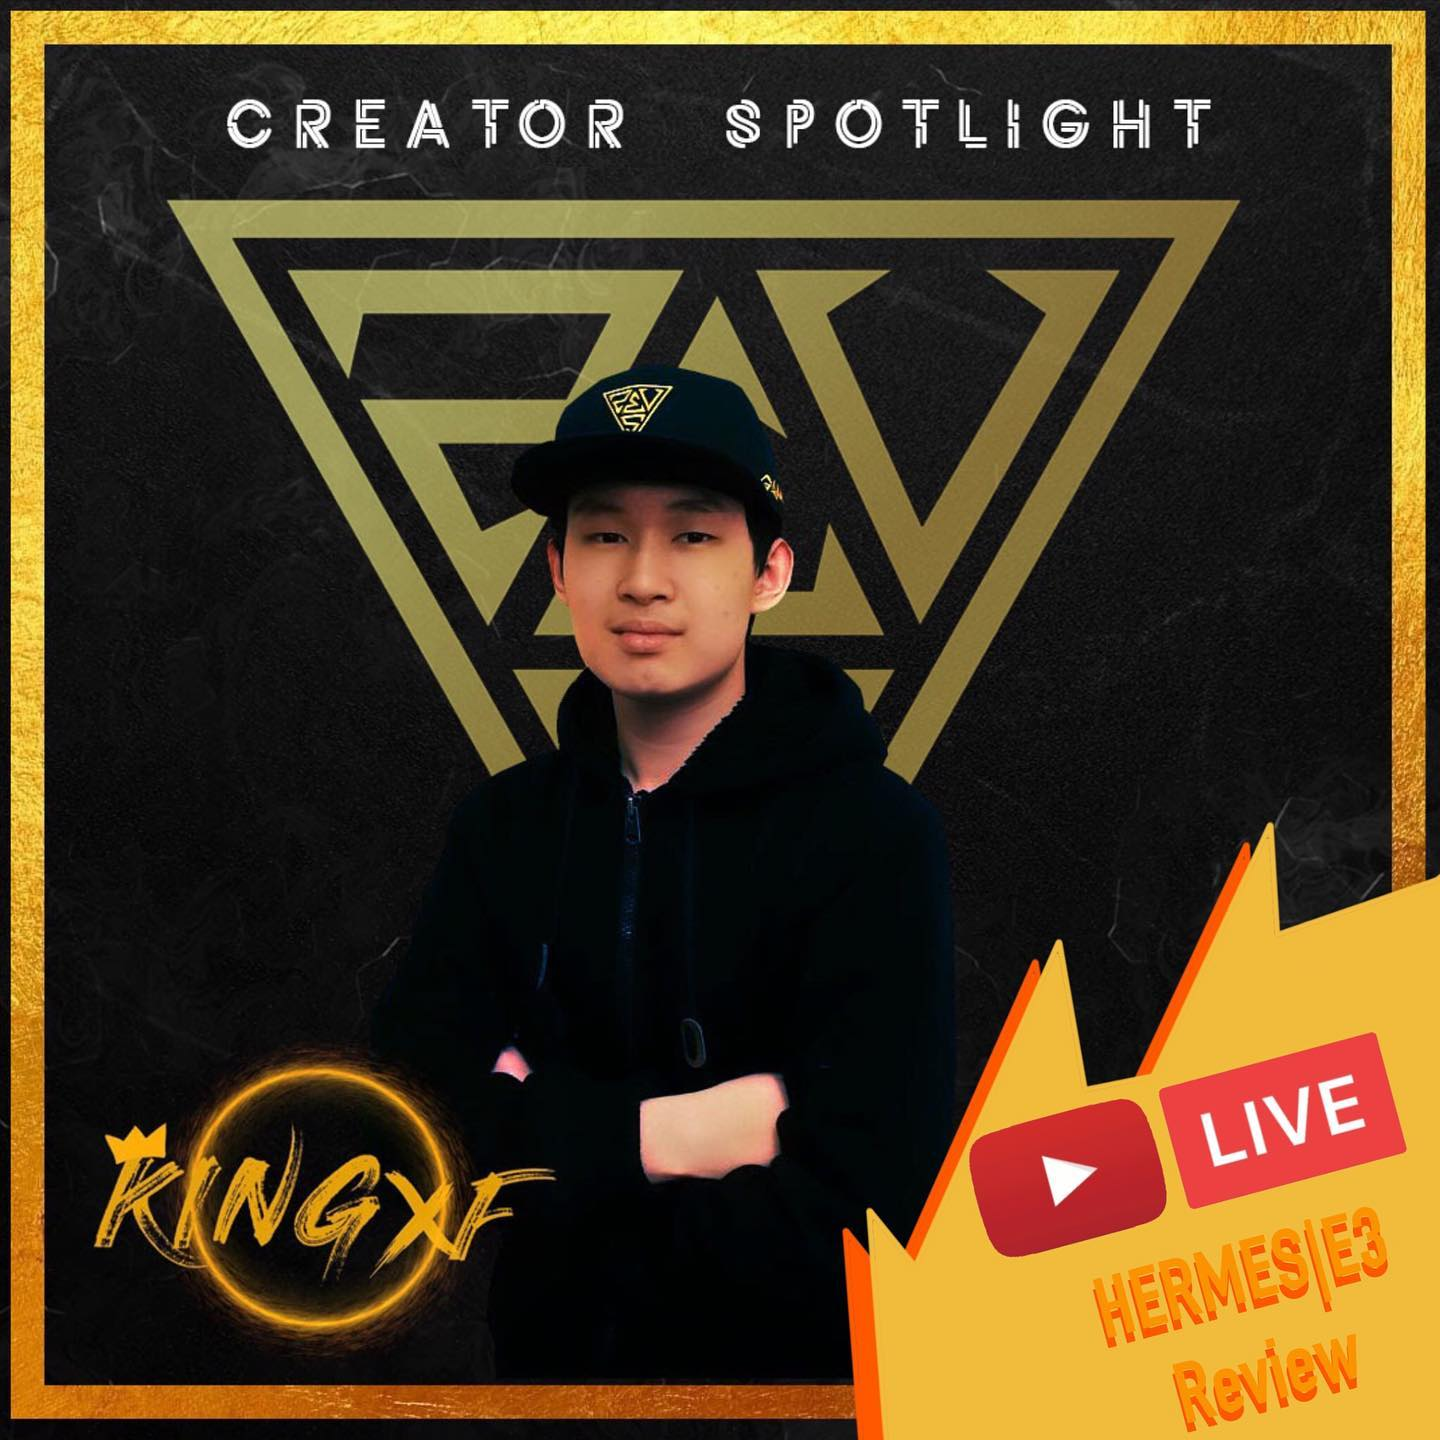 We are happy to announce that @kingxfofficial is officially joining our creative content creators roster! Check out his reviews on his channel! HERMES|E3 60% Mechanical Gaming Keyboard is up in his channel!... Check it out! 👇🏼👇🏼👇🏼👇🏼👇🏼